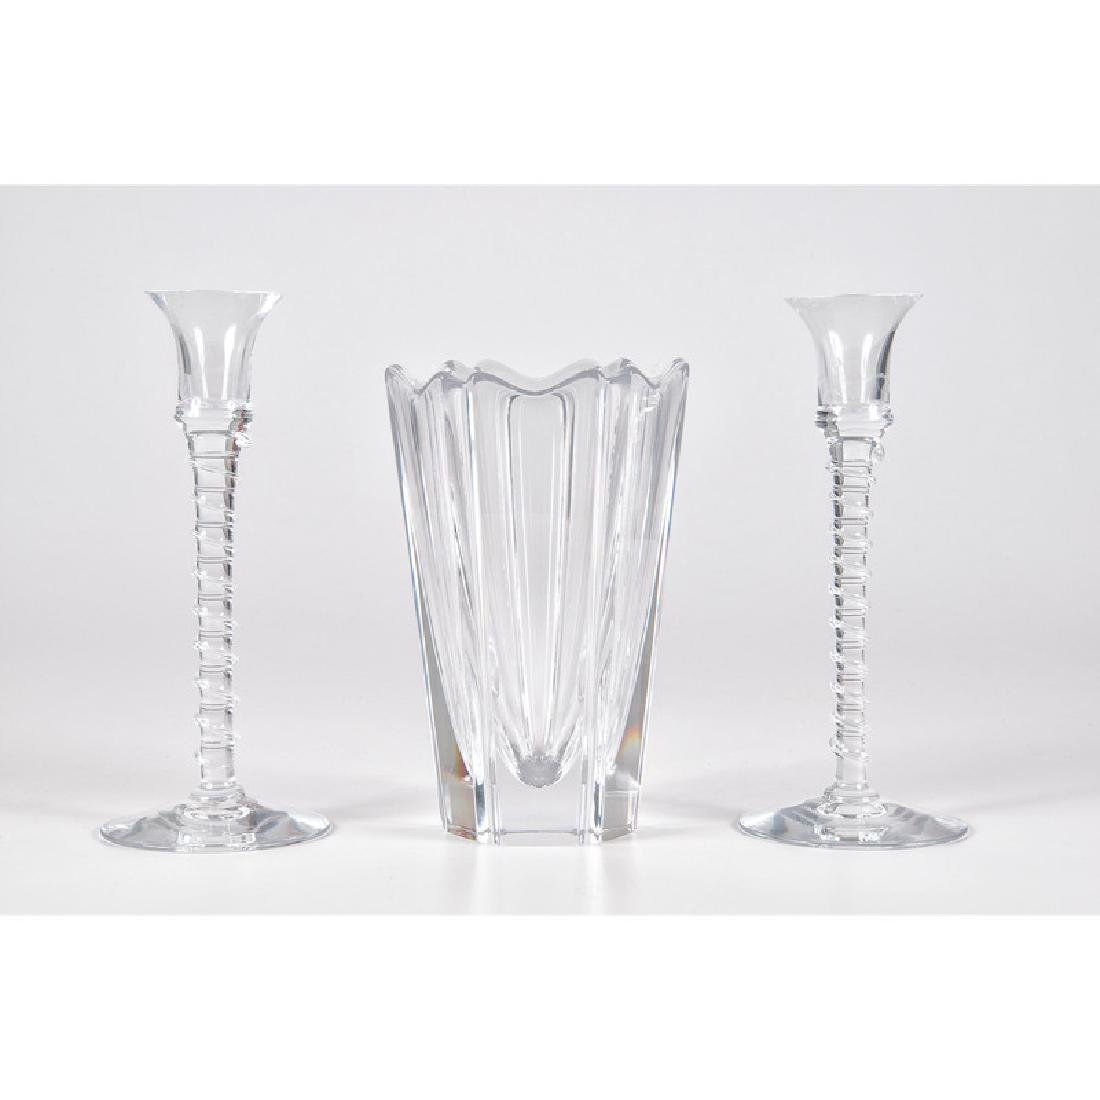 Orrefors Glass Vase and Candlesticks